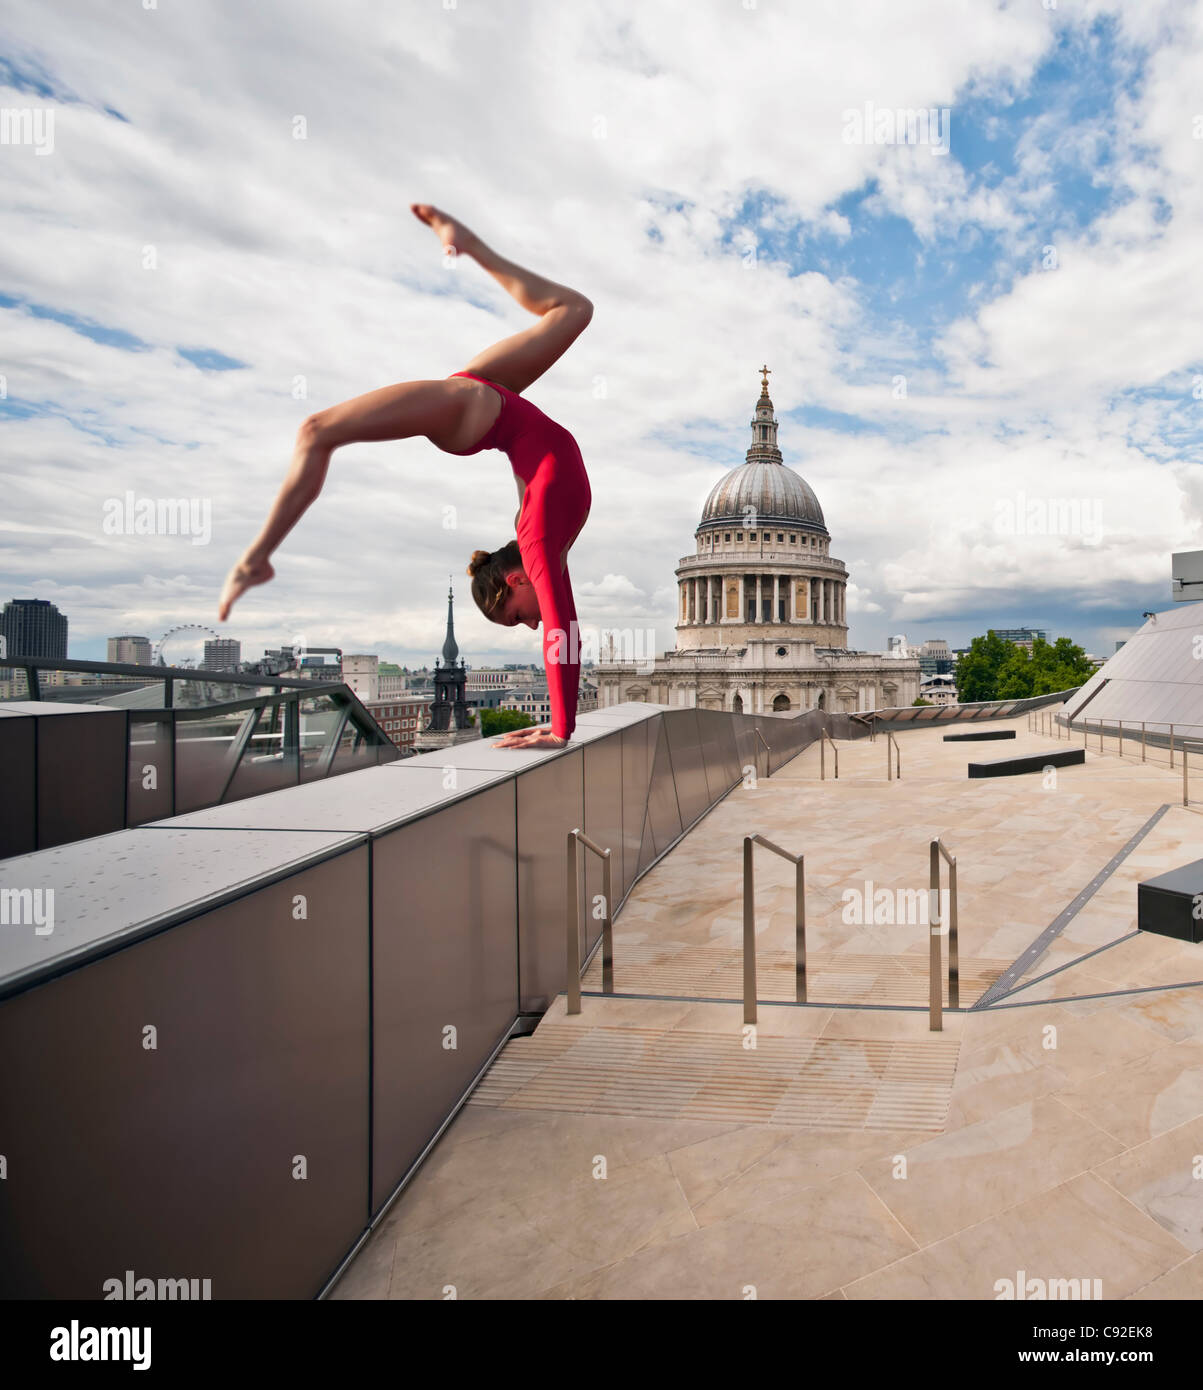 Gymnast on urban rooftop - Stock Image